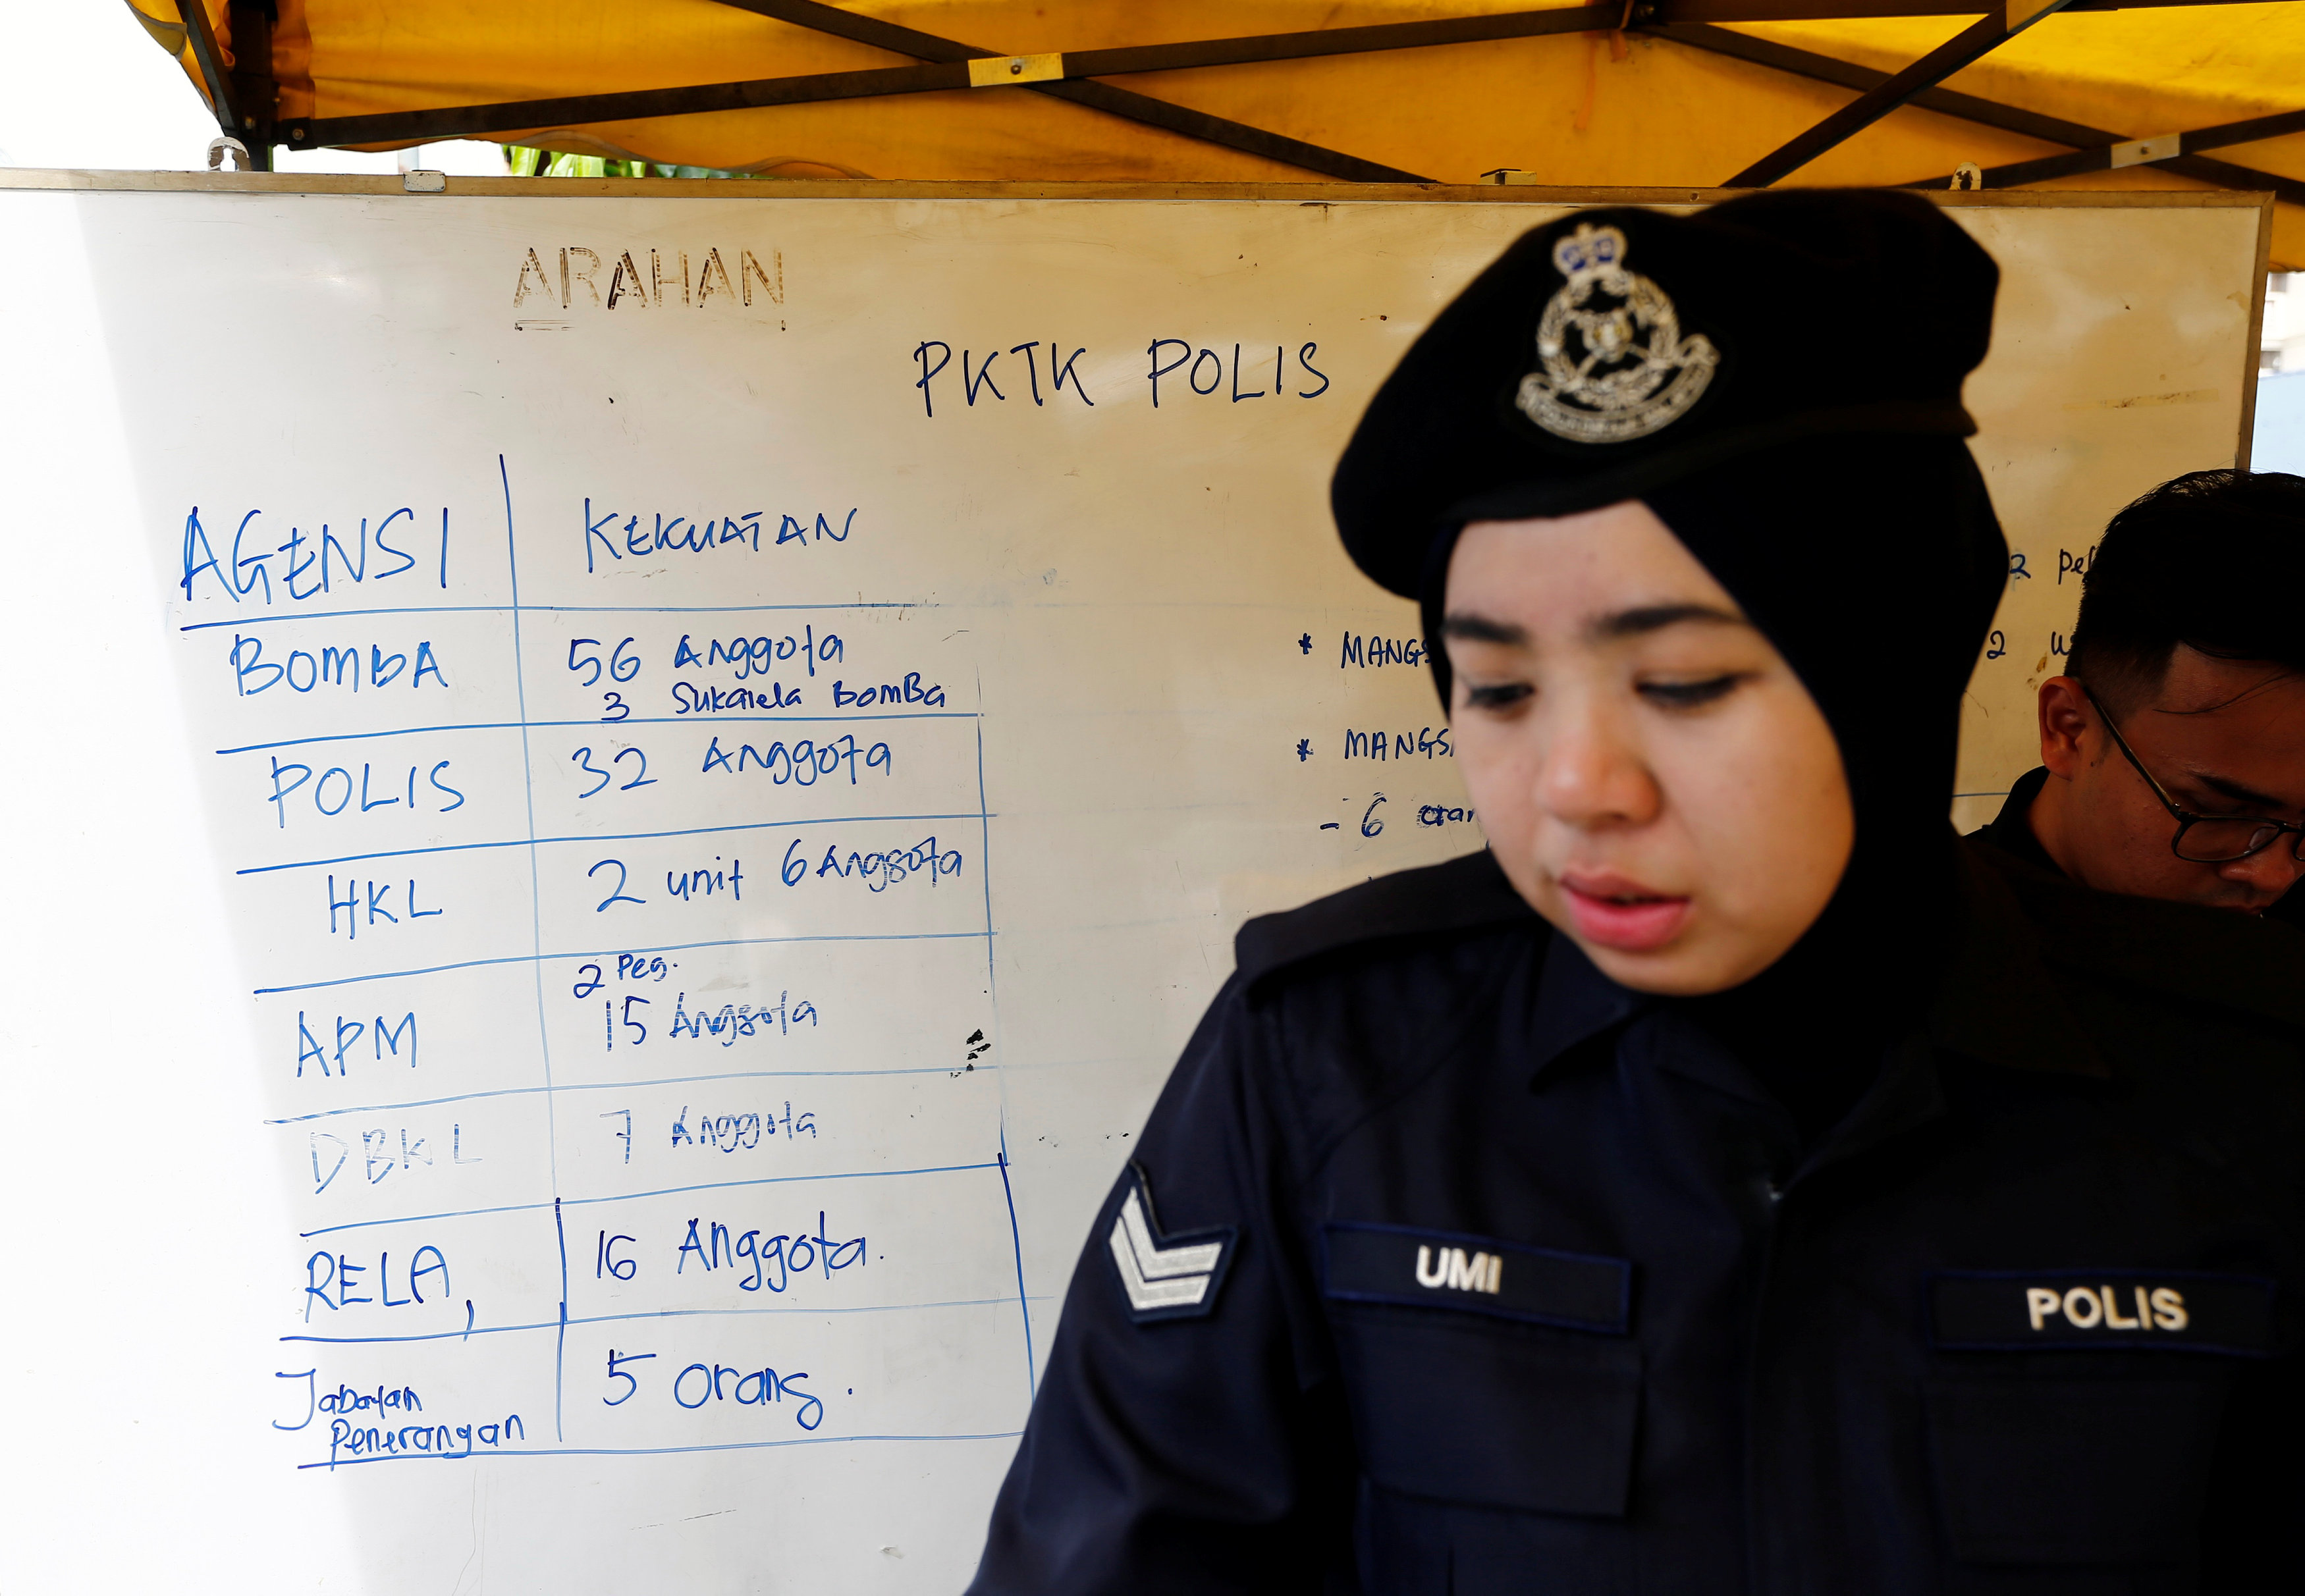 A policewoman stands next to a noticeboard accounting for manpower involved in the aftermath of a fire at religious school school Darul Quran Ittifaqiyah in Kuala Lumpur, Malaysia on Sept. 14, 2017. (REUTERS/Lai Seng Sin)